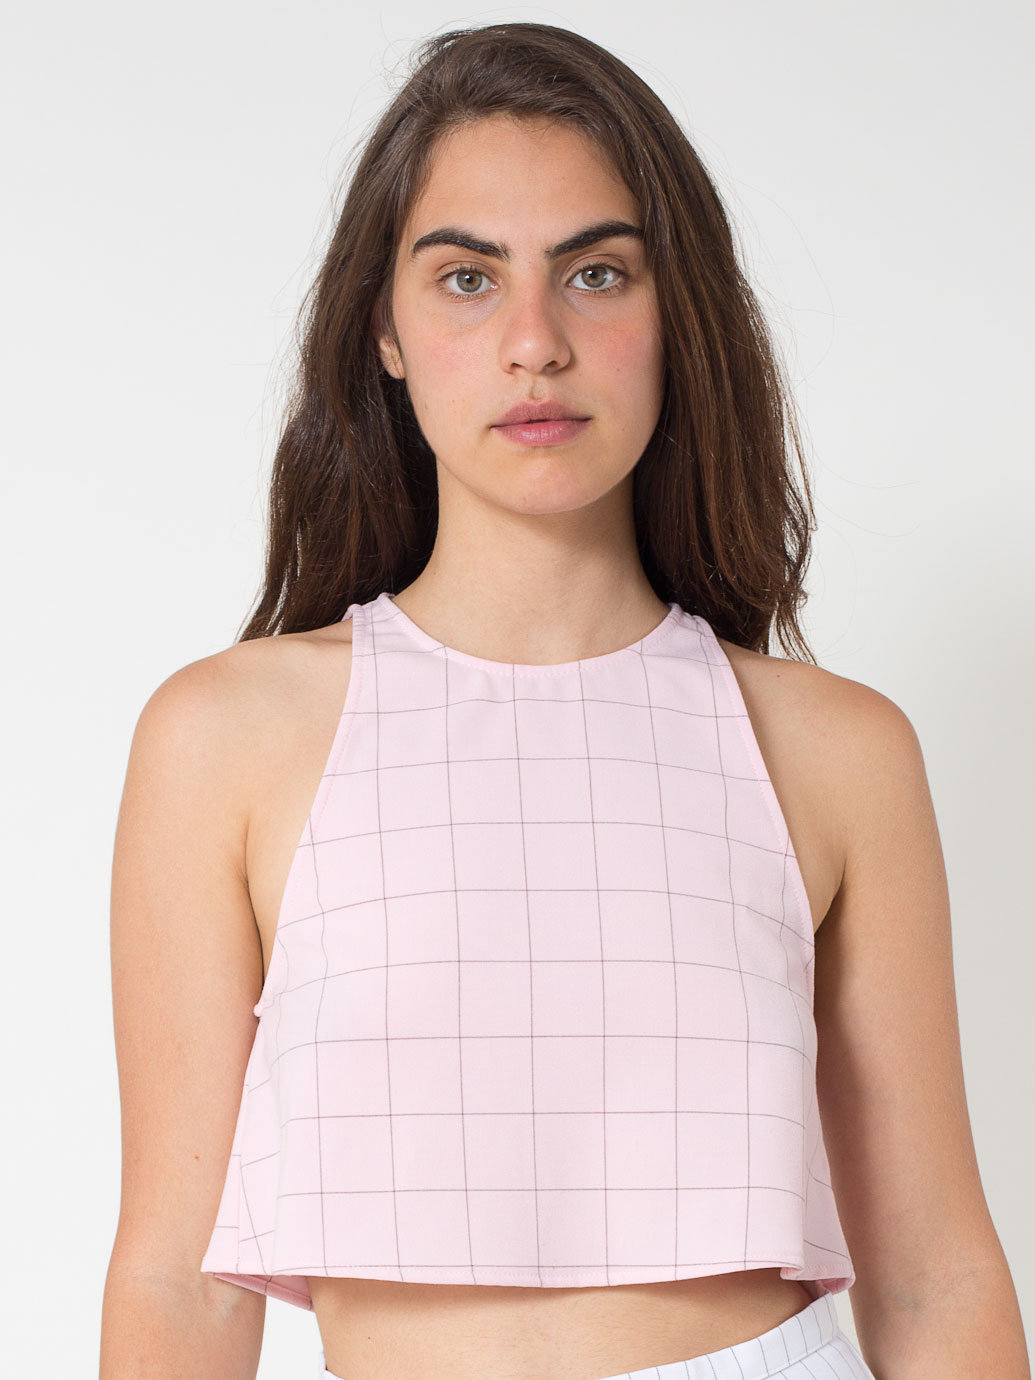 The Grid Print Lolita Crop | American Apparel